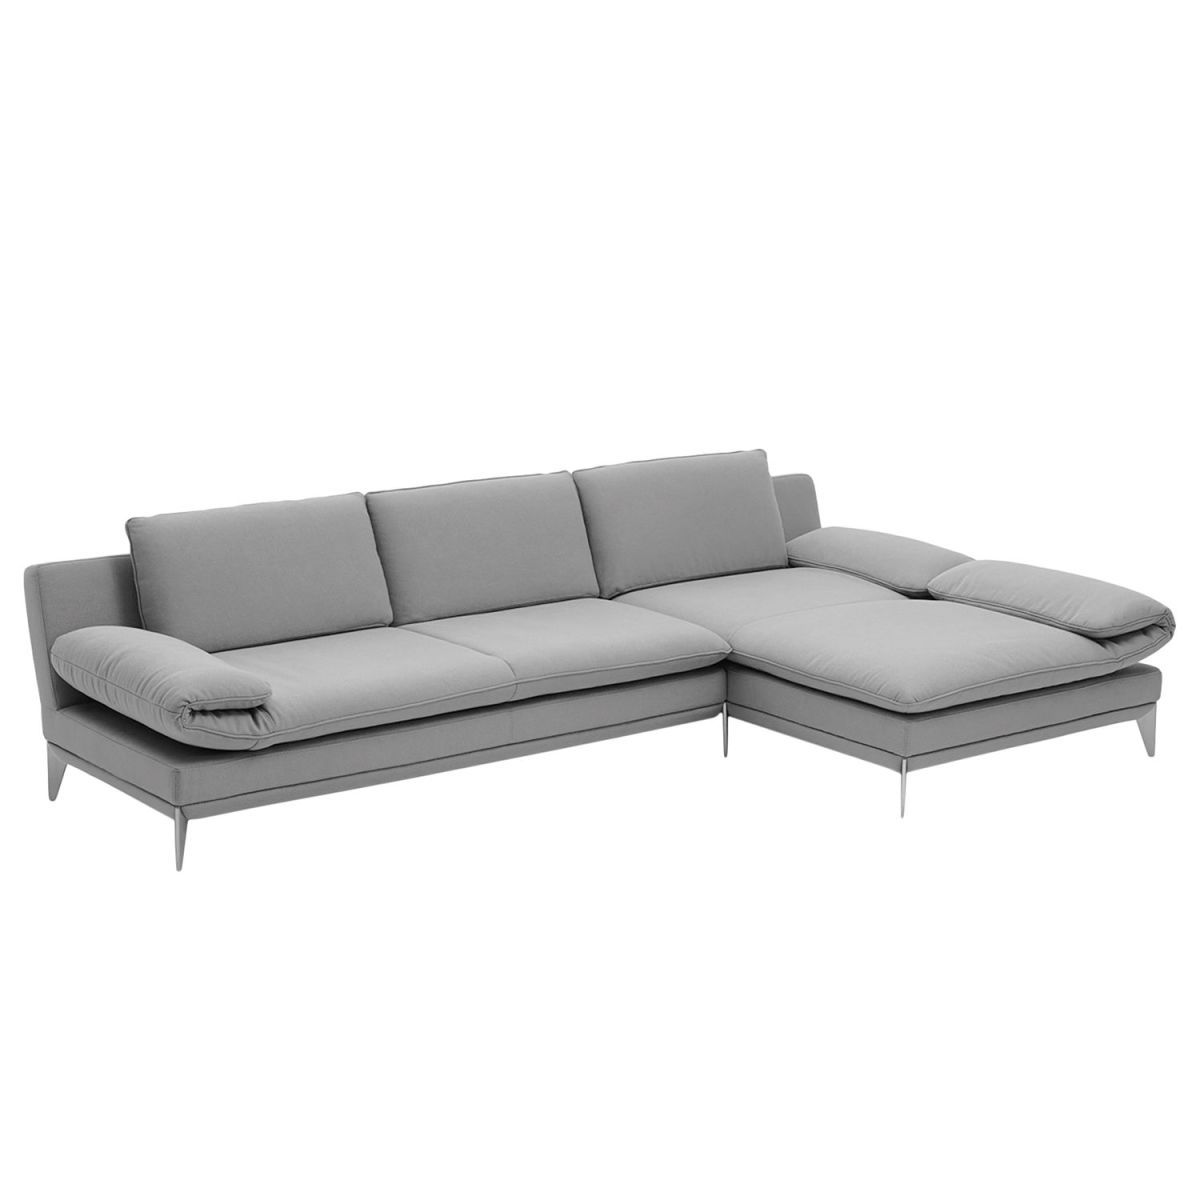 Fredriks Couchtisch Two Colour Fredriks Modern Living Great With Fredriks Modern Living Mobel